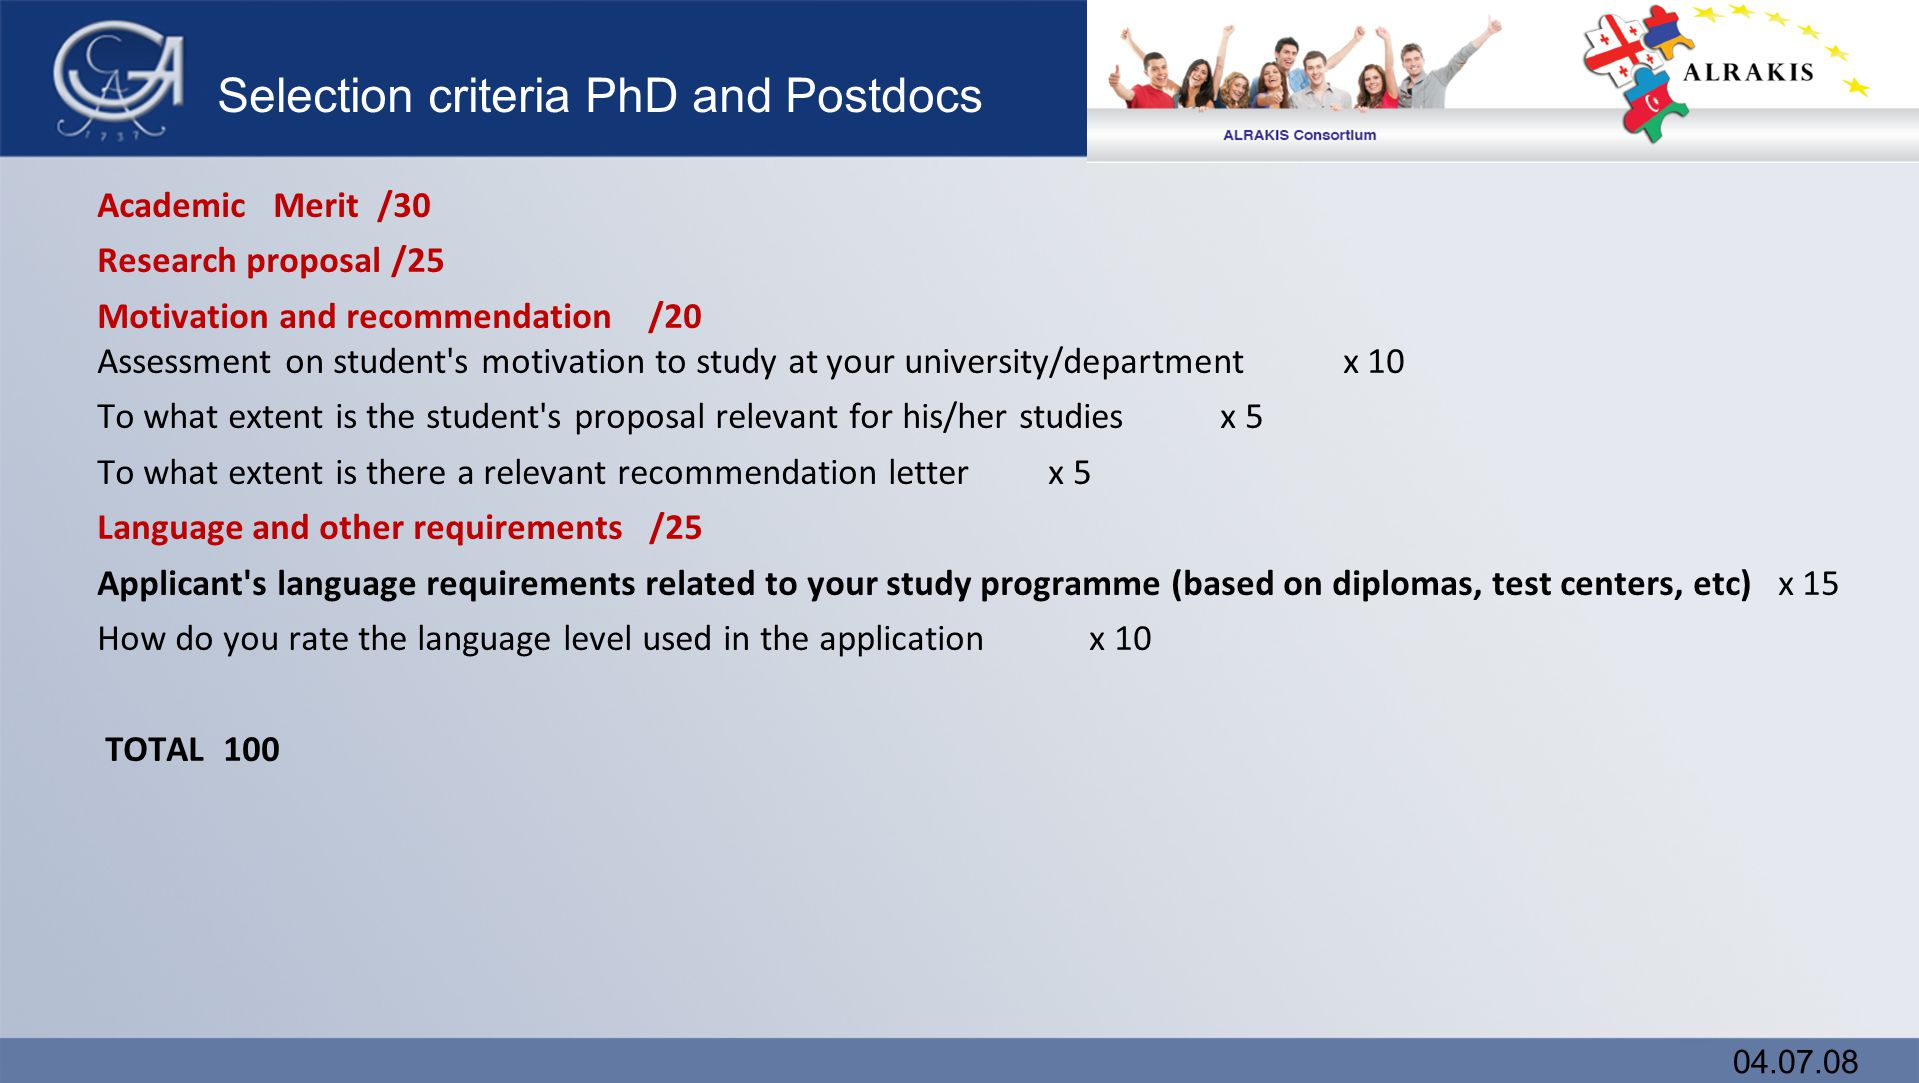 Selection criteria PhD and Postdocs Academic Merit /30 Research proposal /25 Motivation and recommendation /20 Assessment on student s motivation to study at your university/department x 10 To what extent is the student s proposal relevant for his/her studies x 5 To what extent is there a relevant recommendation letter x 5 Language and other requirements /25 Applicant s language requirements related to your study programme (based on diplomas, test centers, etc) x 15 How do you rate the language level used in the application x 10 TOTAL 100 04.07.08